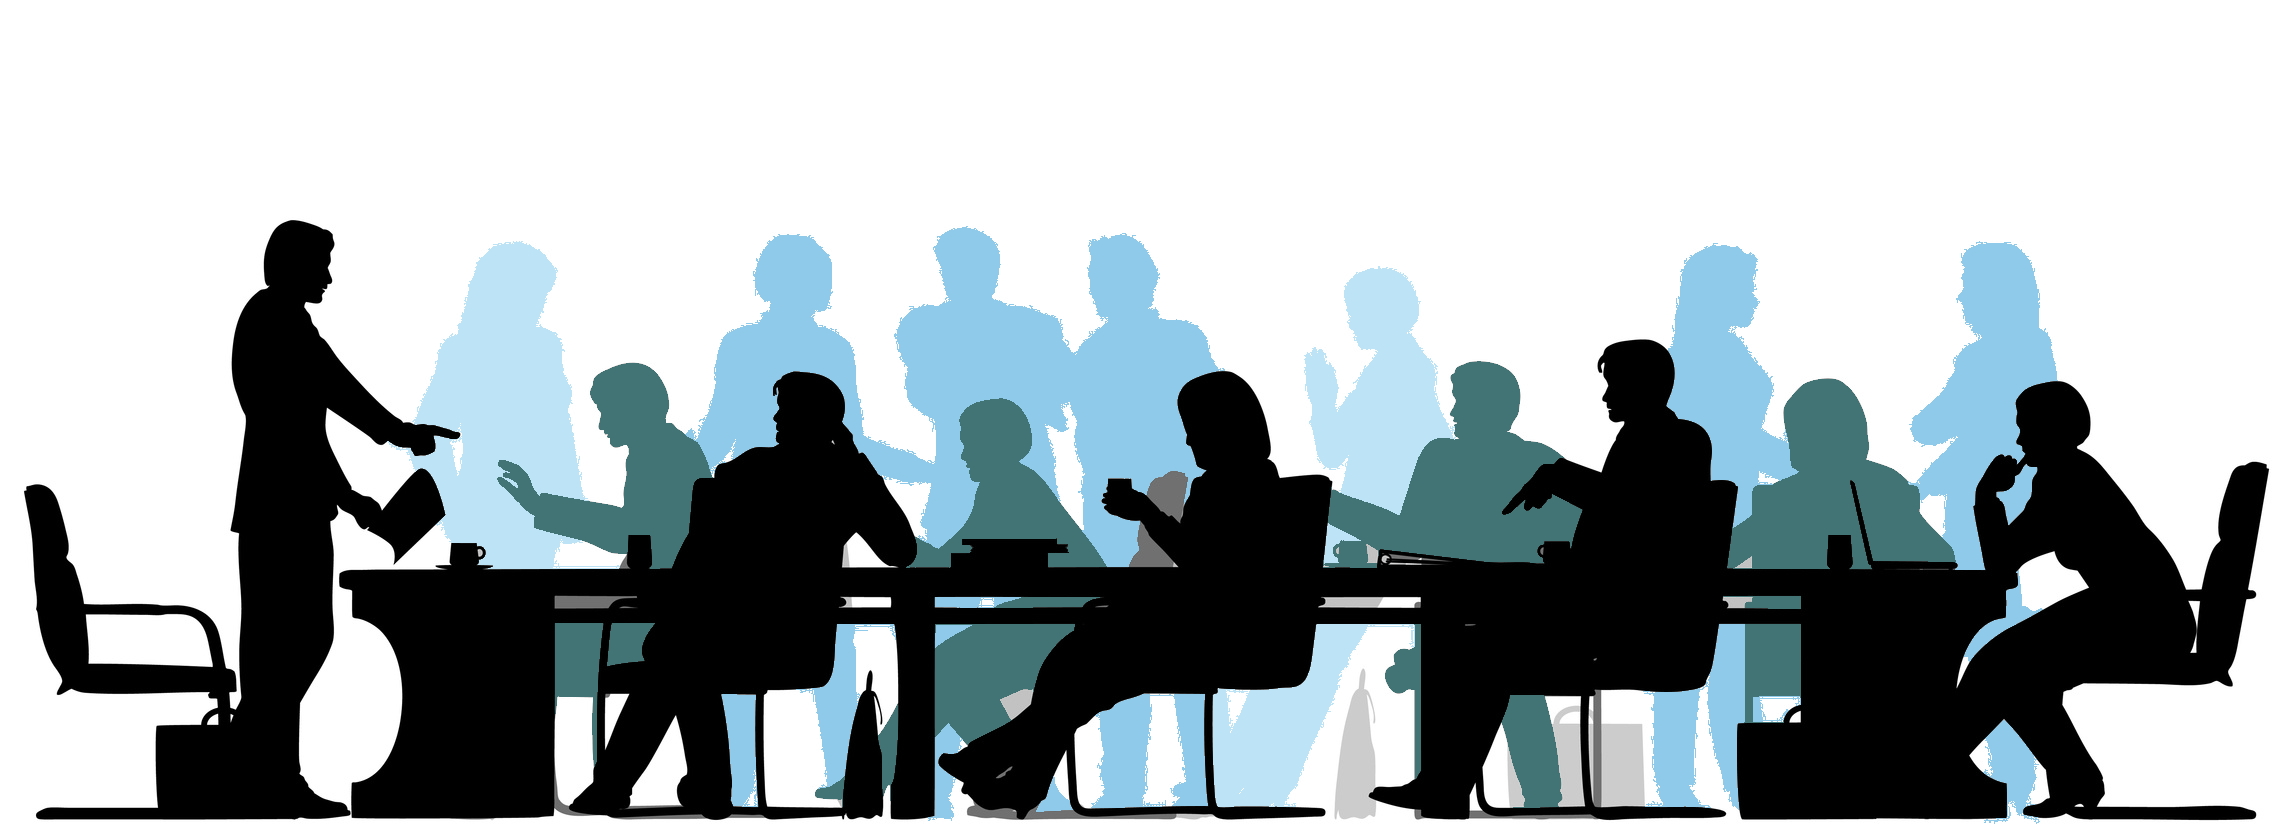 bioencapsulation research group clipart people working together as a team clipart people working together as a team